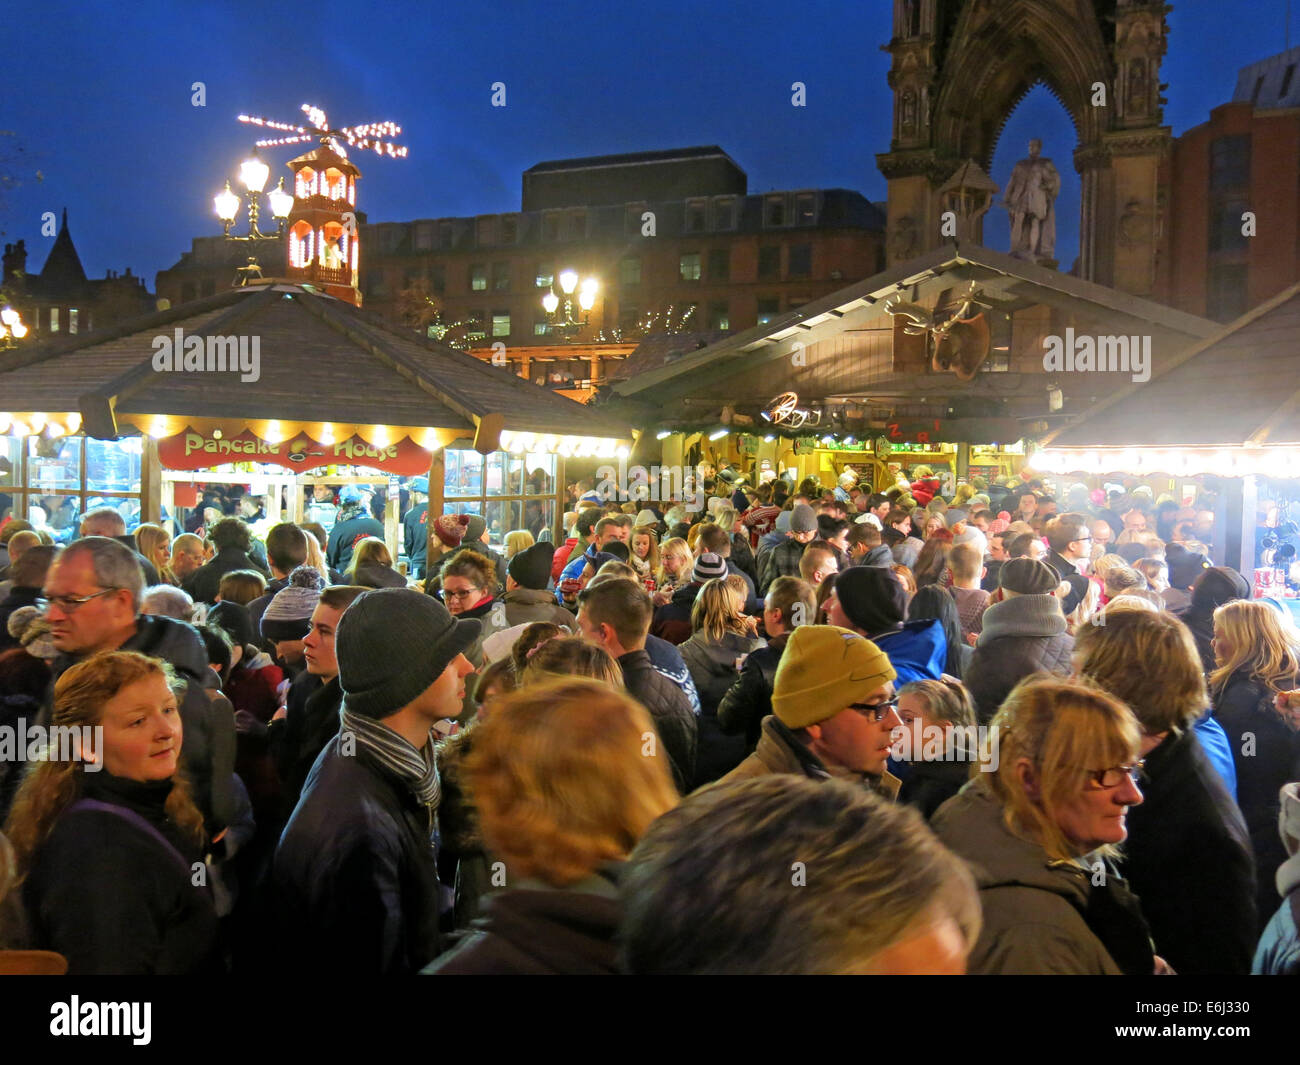 Visitors & shoppers enjoying Manchester Christmas German Markets in Albert Square , December at dusk - Stock Image